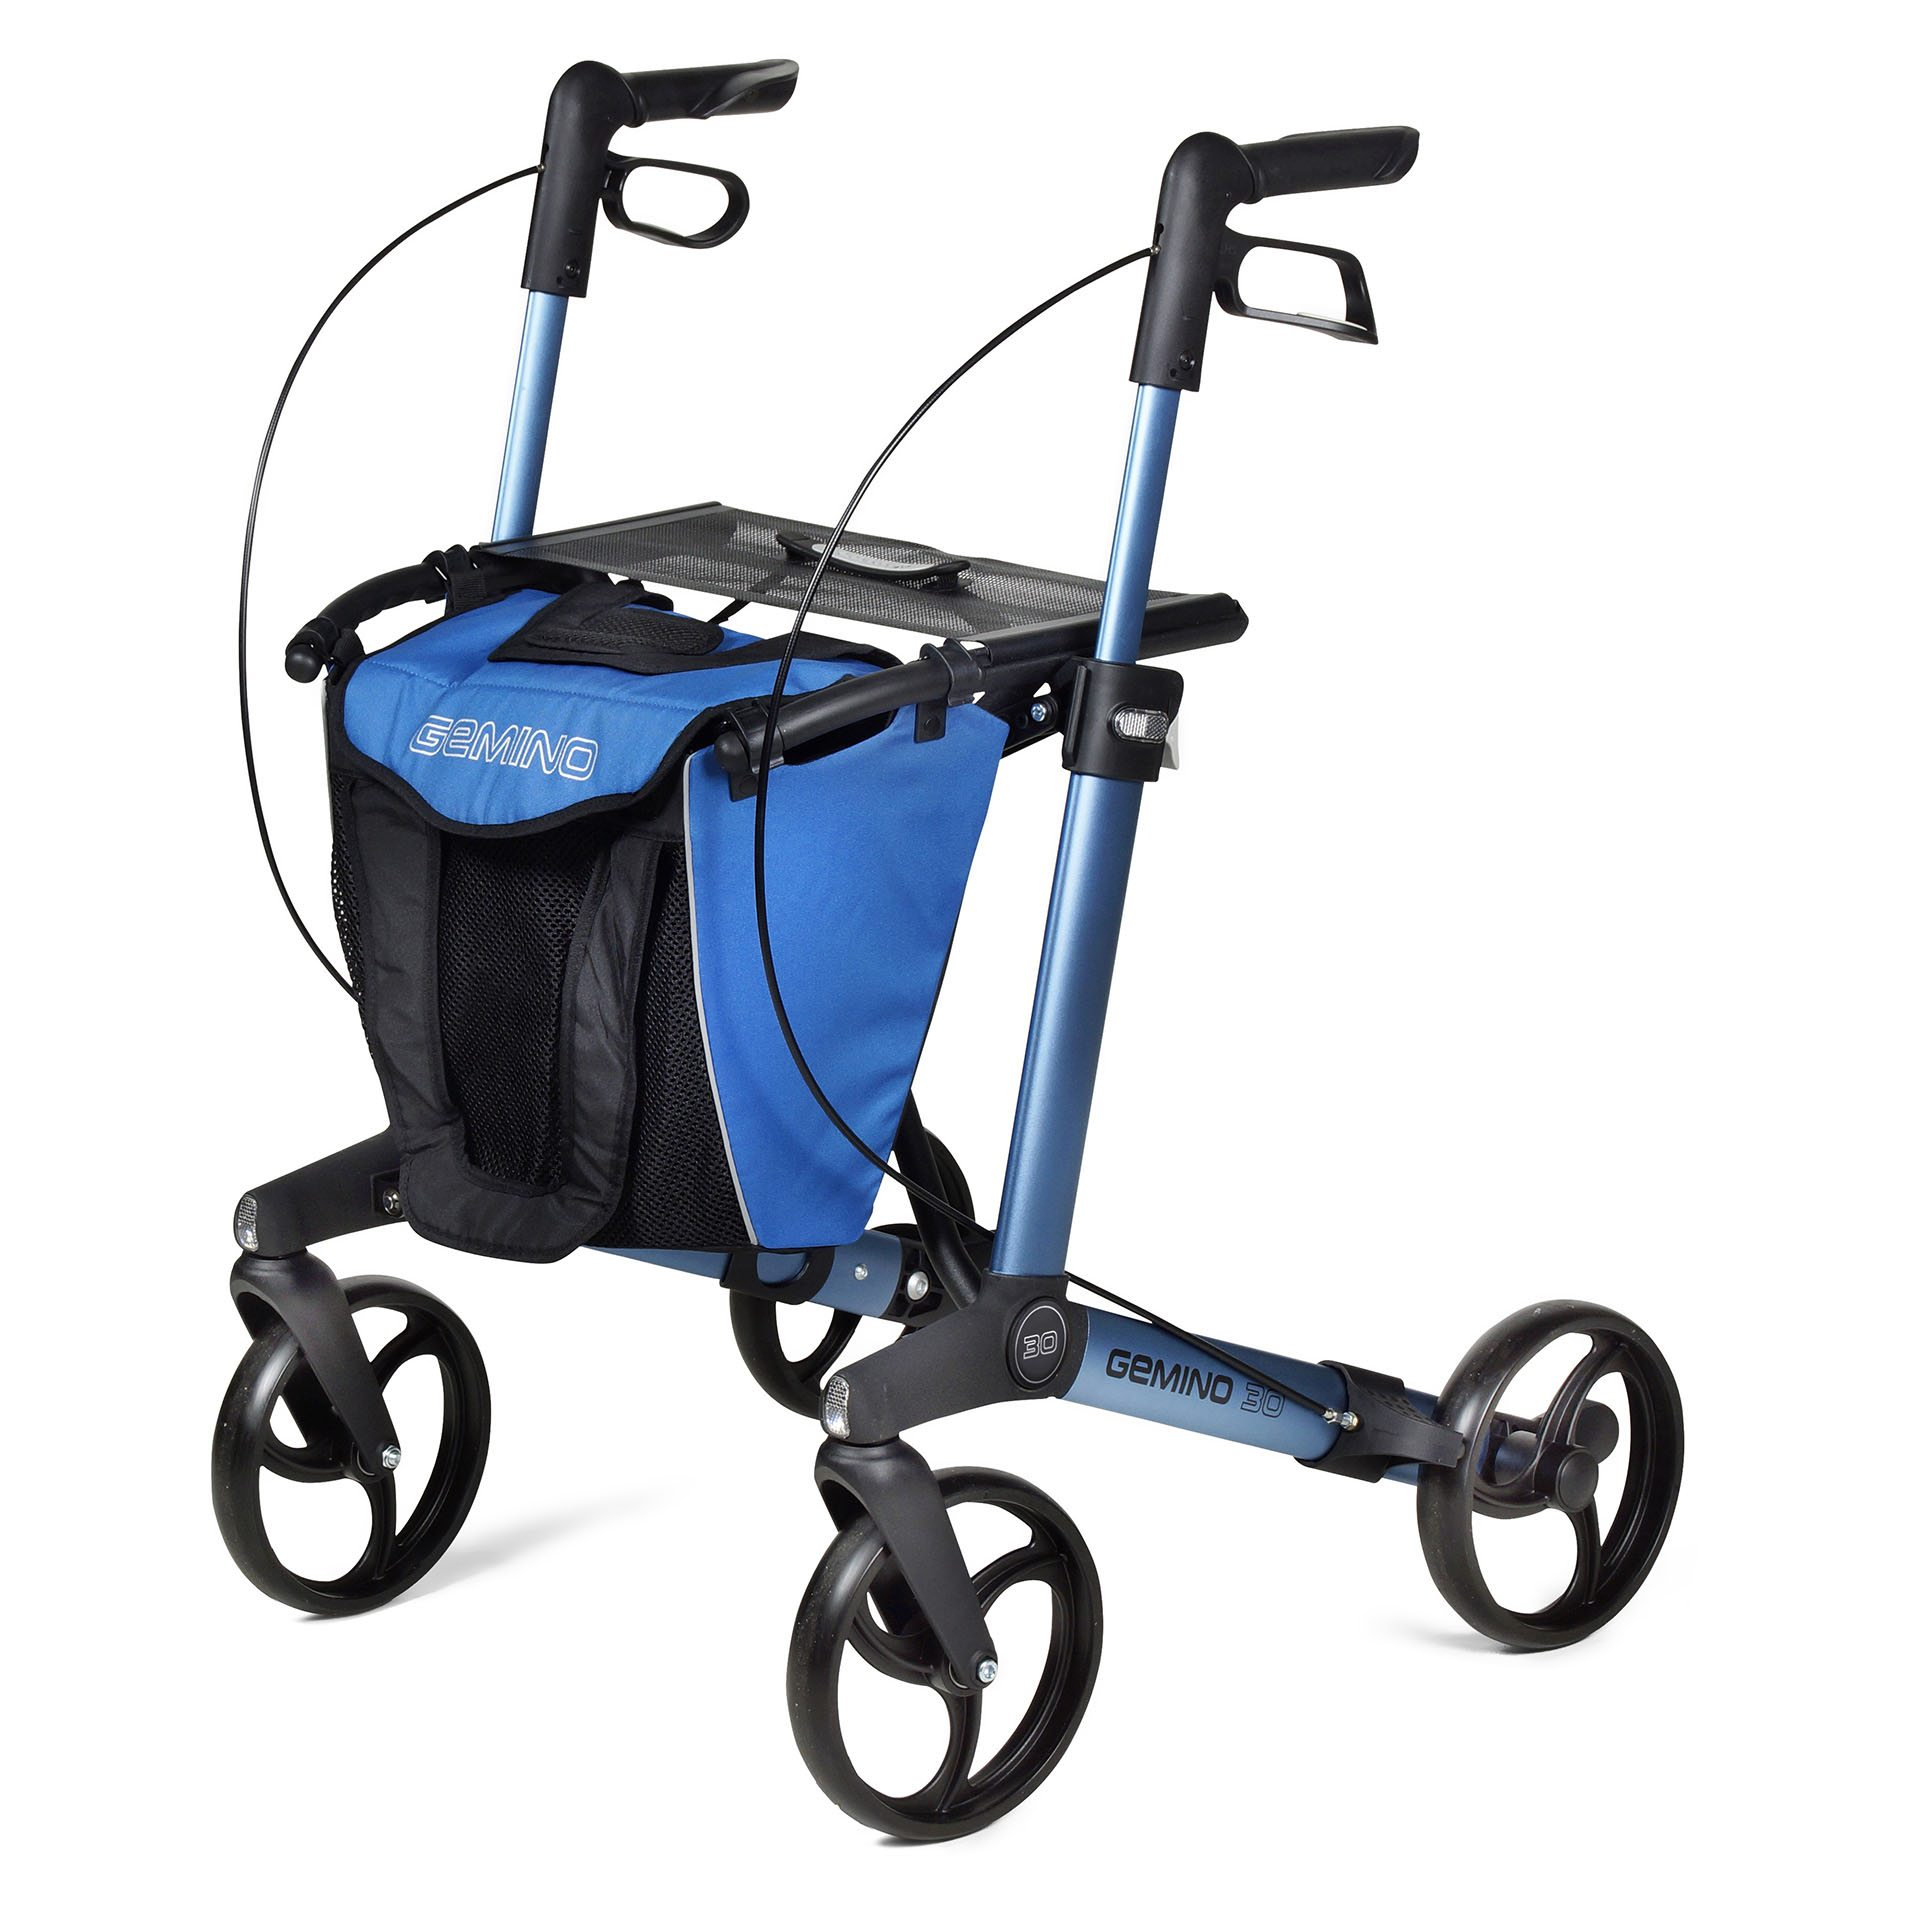 Gemino 30 rollator Blue van Sunrise Medical